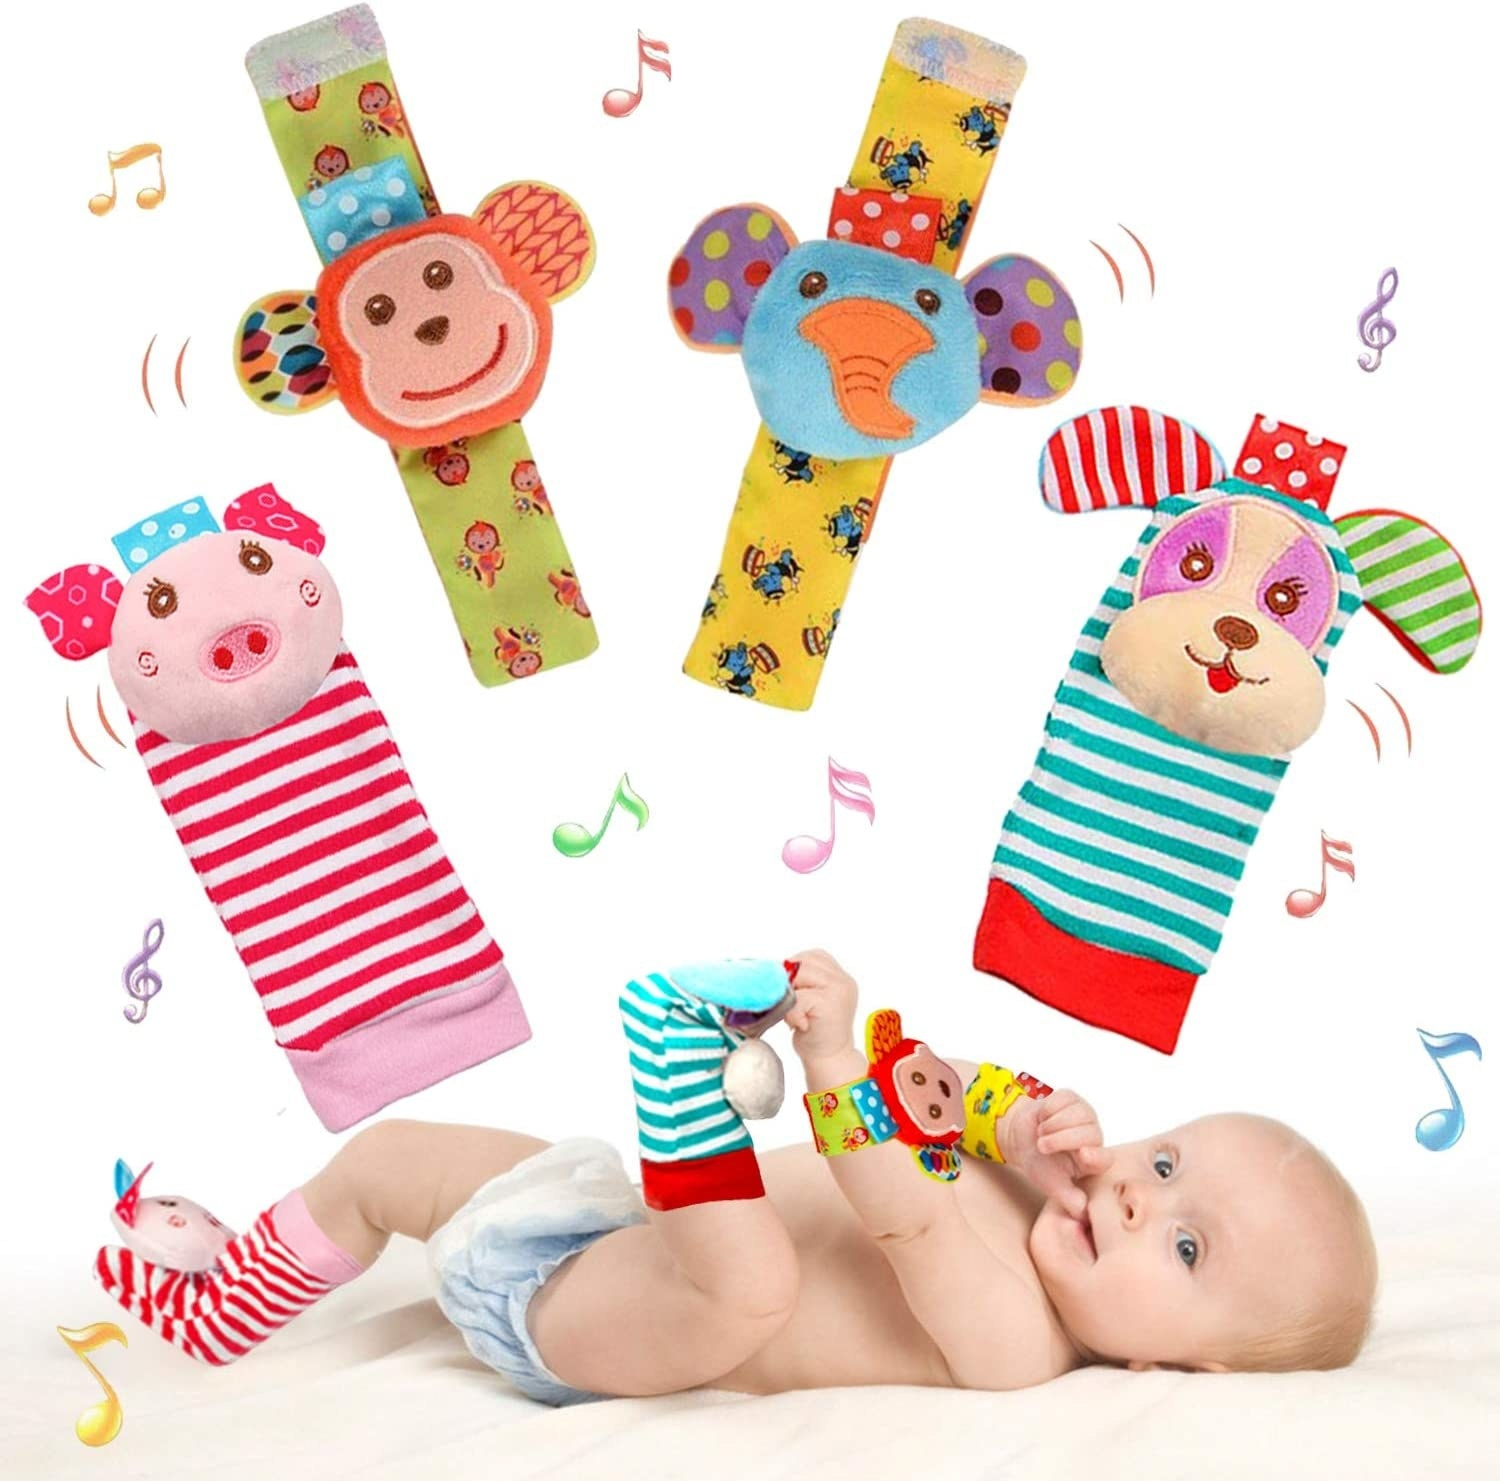 a baby wearing the foot rattles